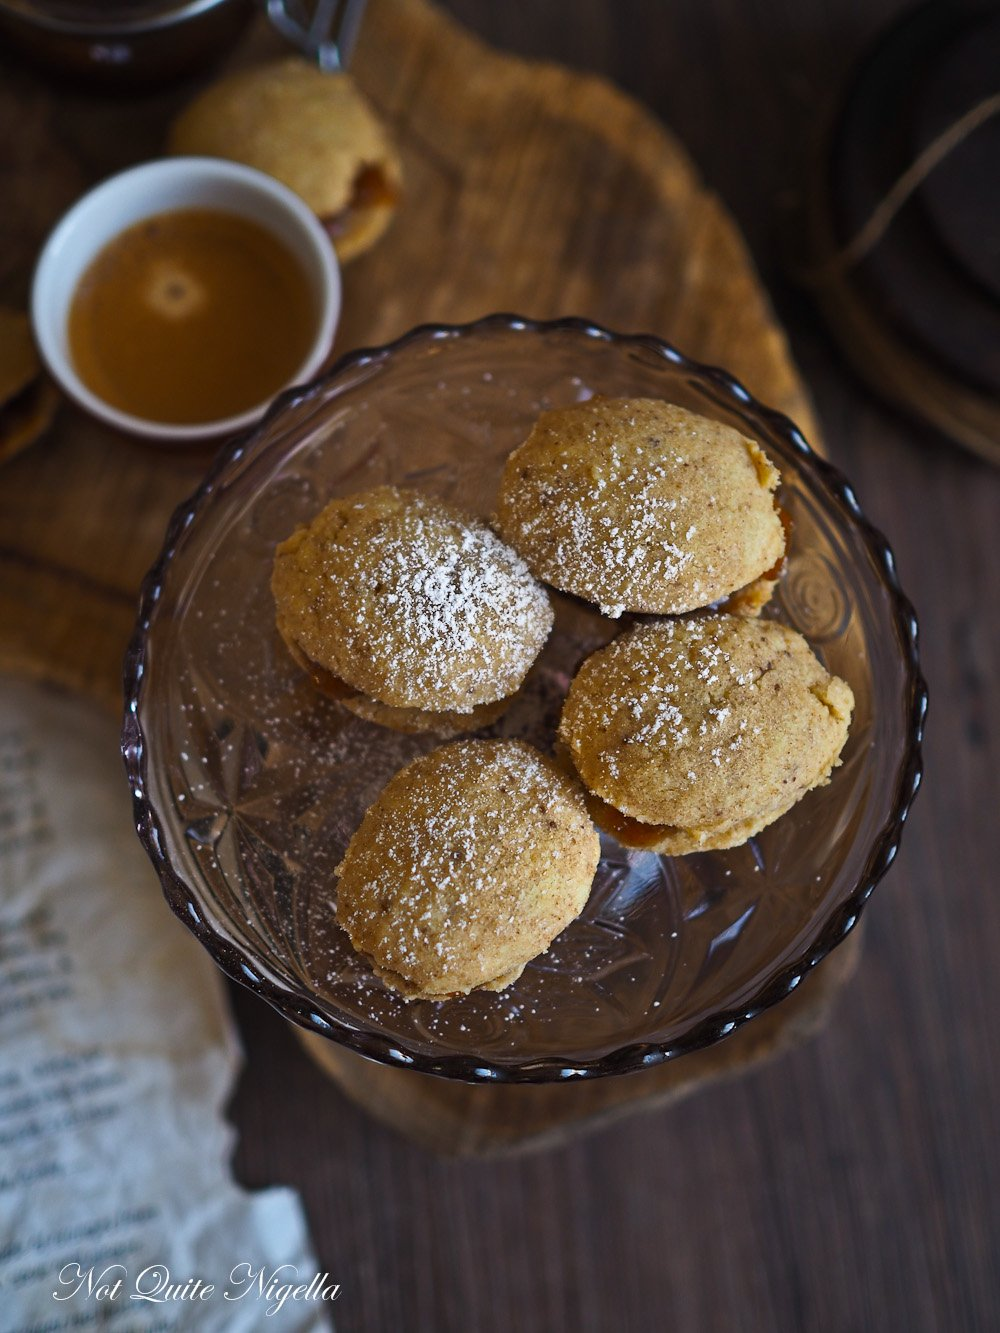 Lusikkaleivat Finnish Spoon Cookies